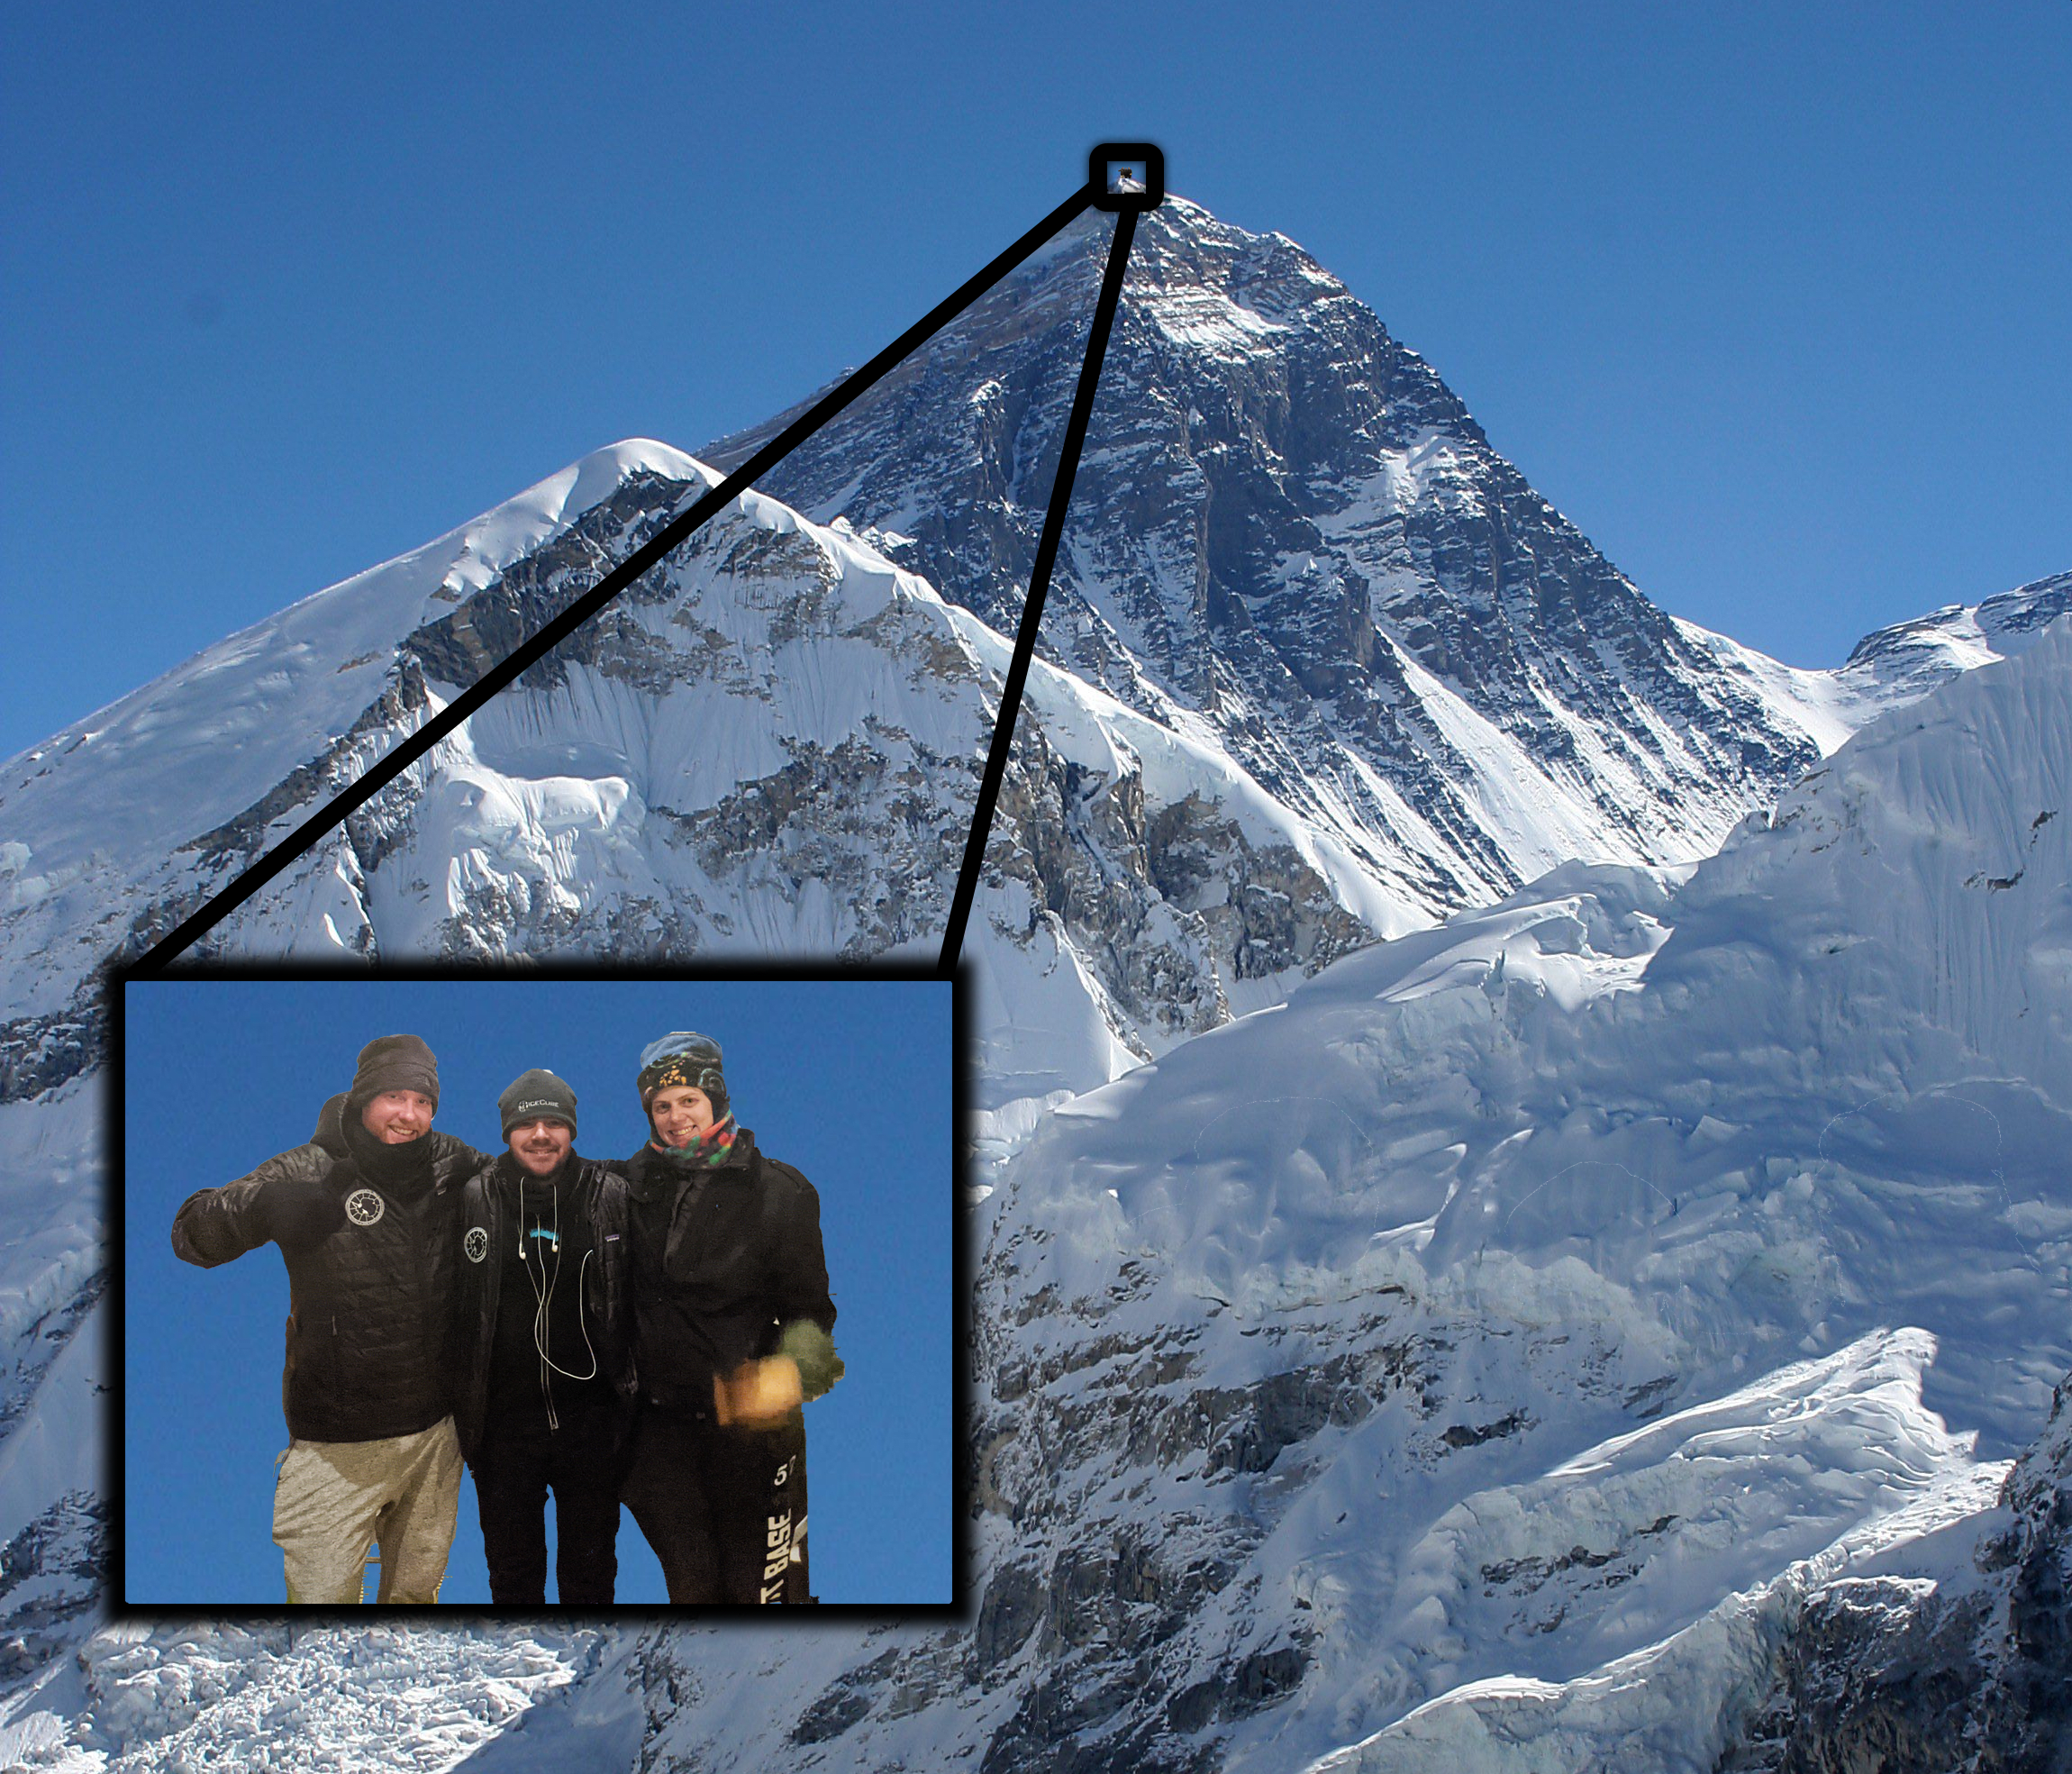 View of Mt. Everest, with group photo of three people in inset.